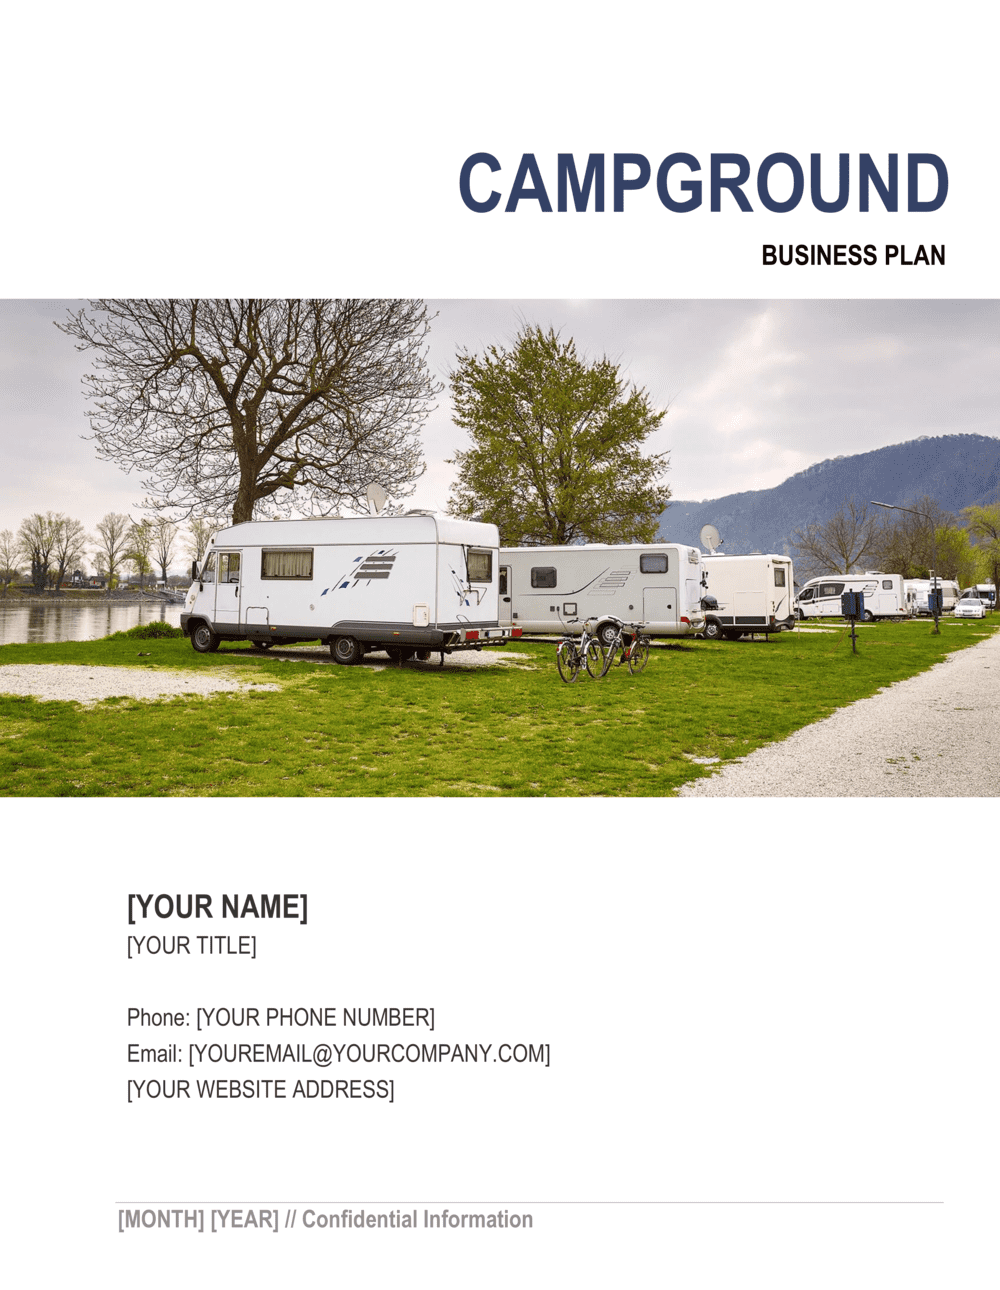 Business-in-a-Box's Campground Business Plan Template